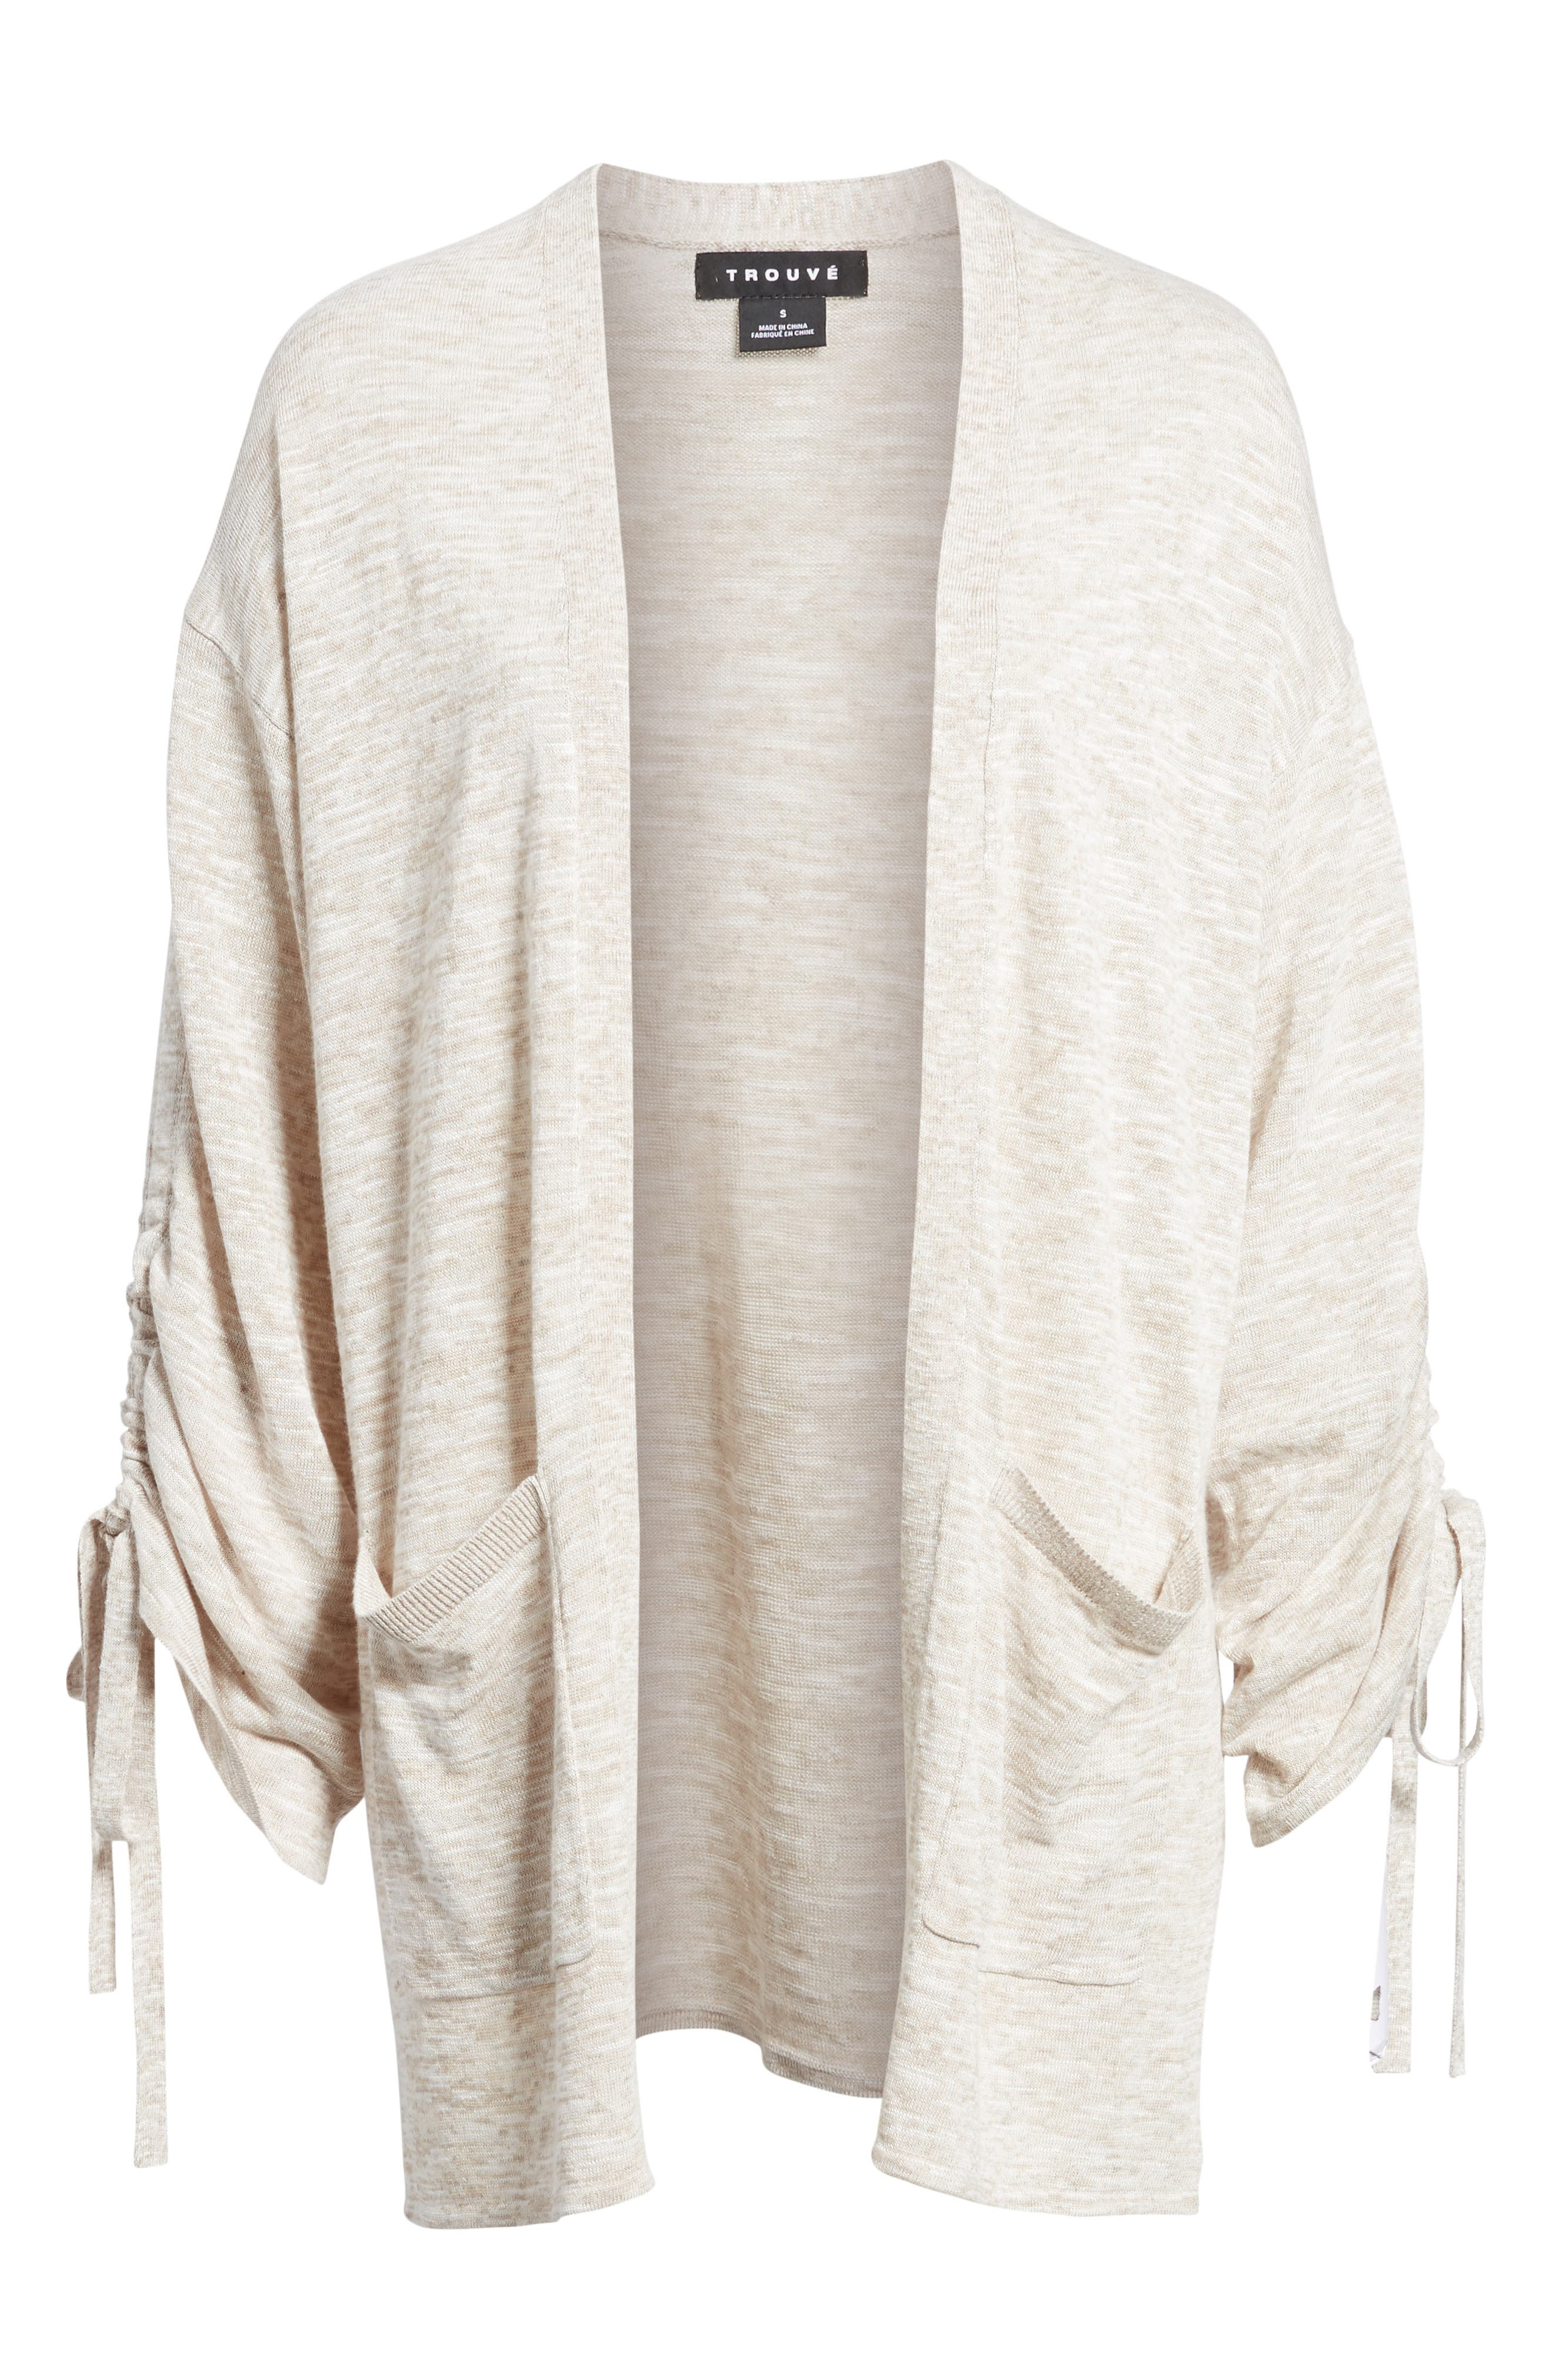 Ruched Sleeve Cardigan,                             Alternate thumbnail 6, color,                             250